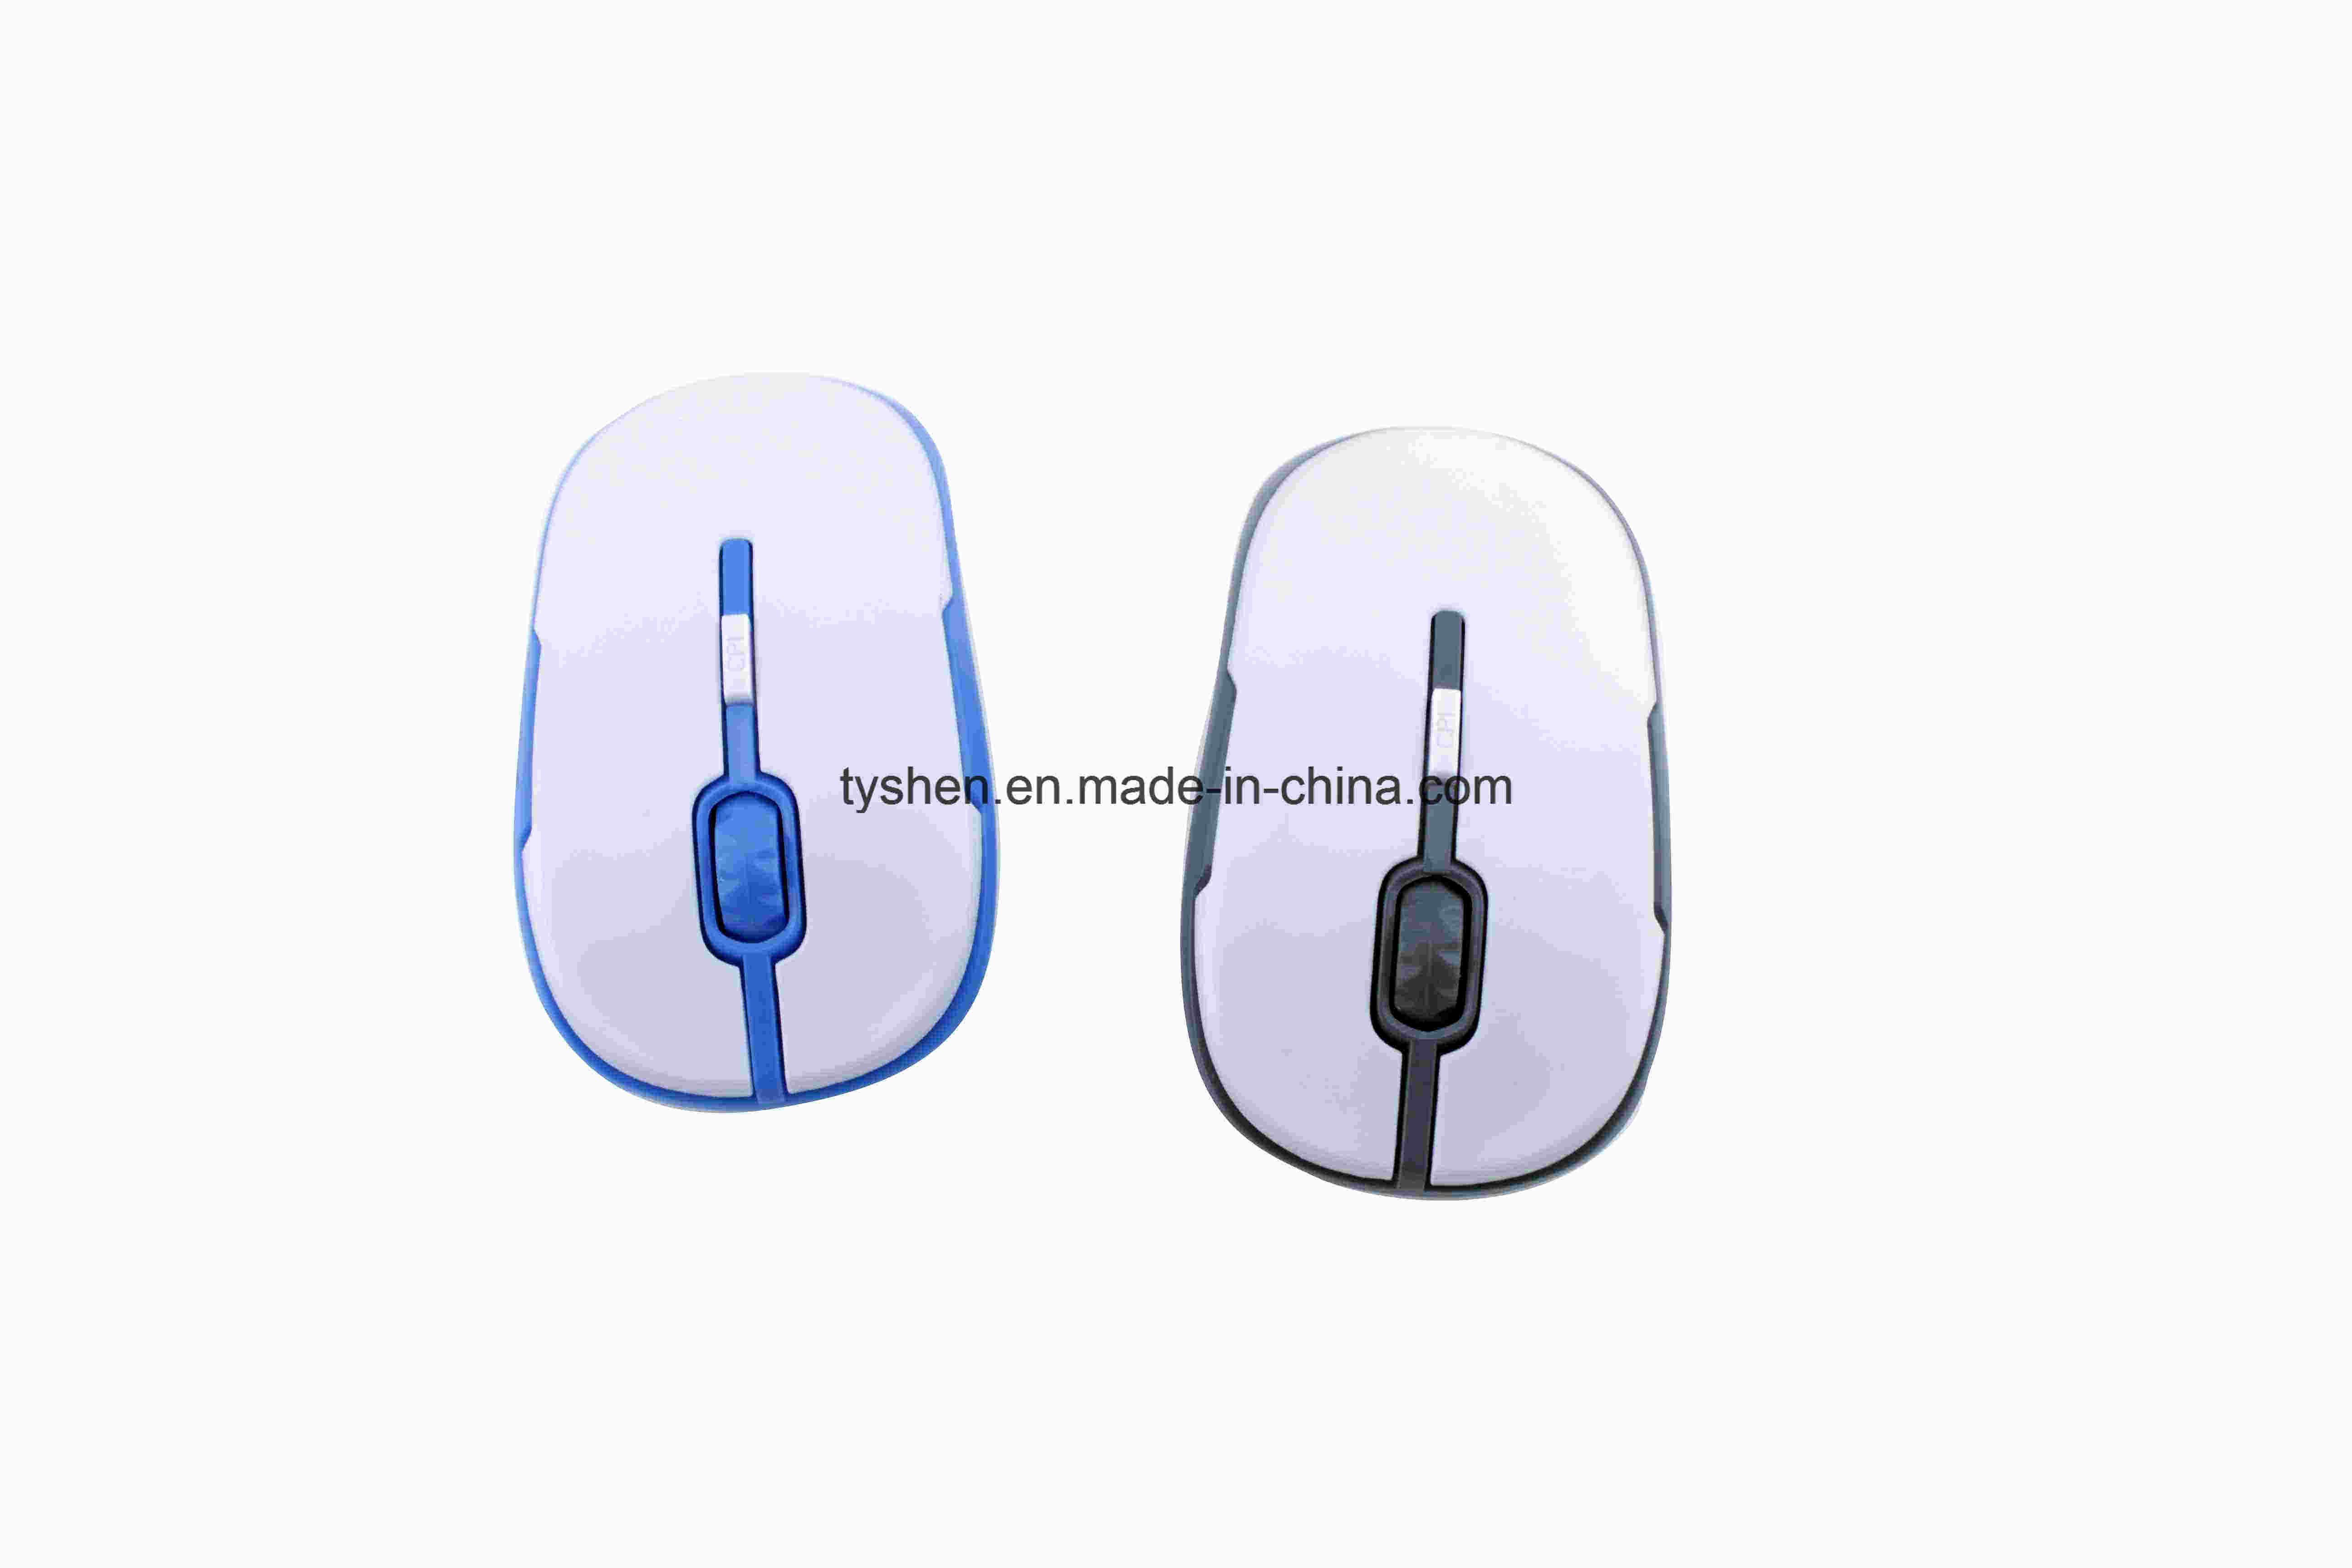 New 4D Wireless Mouse of 800/1200/1600 Dpi pictures & photos